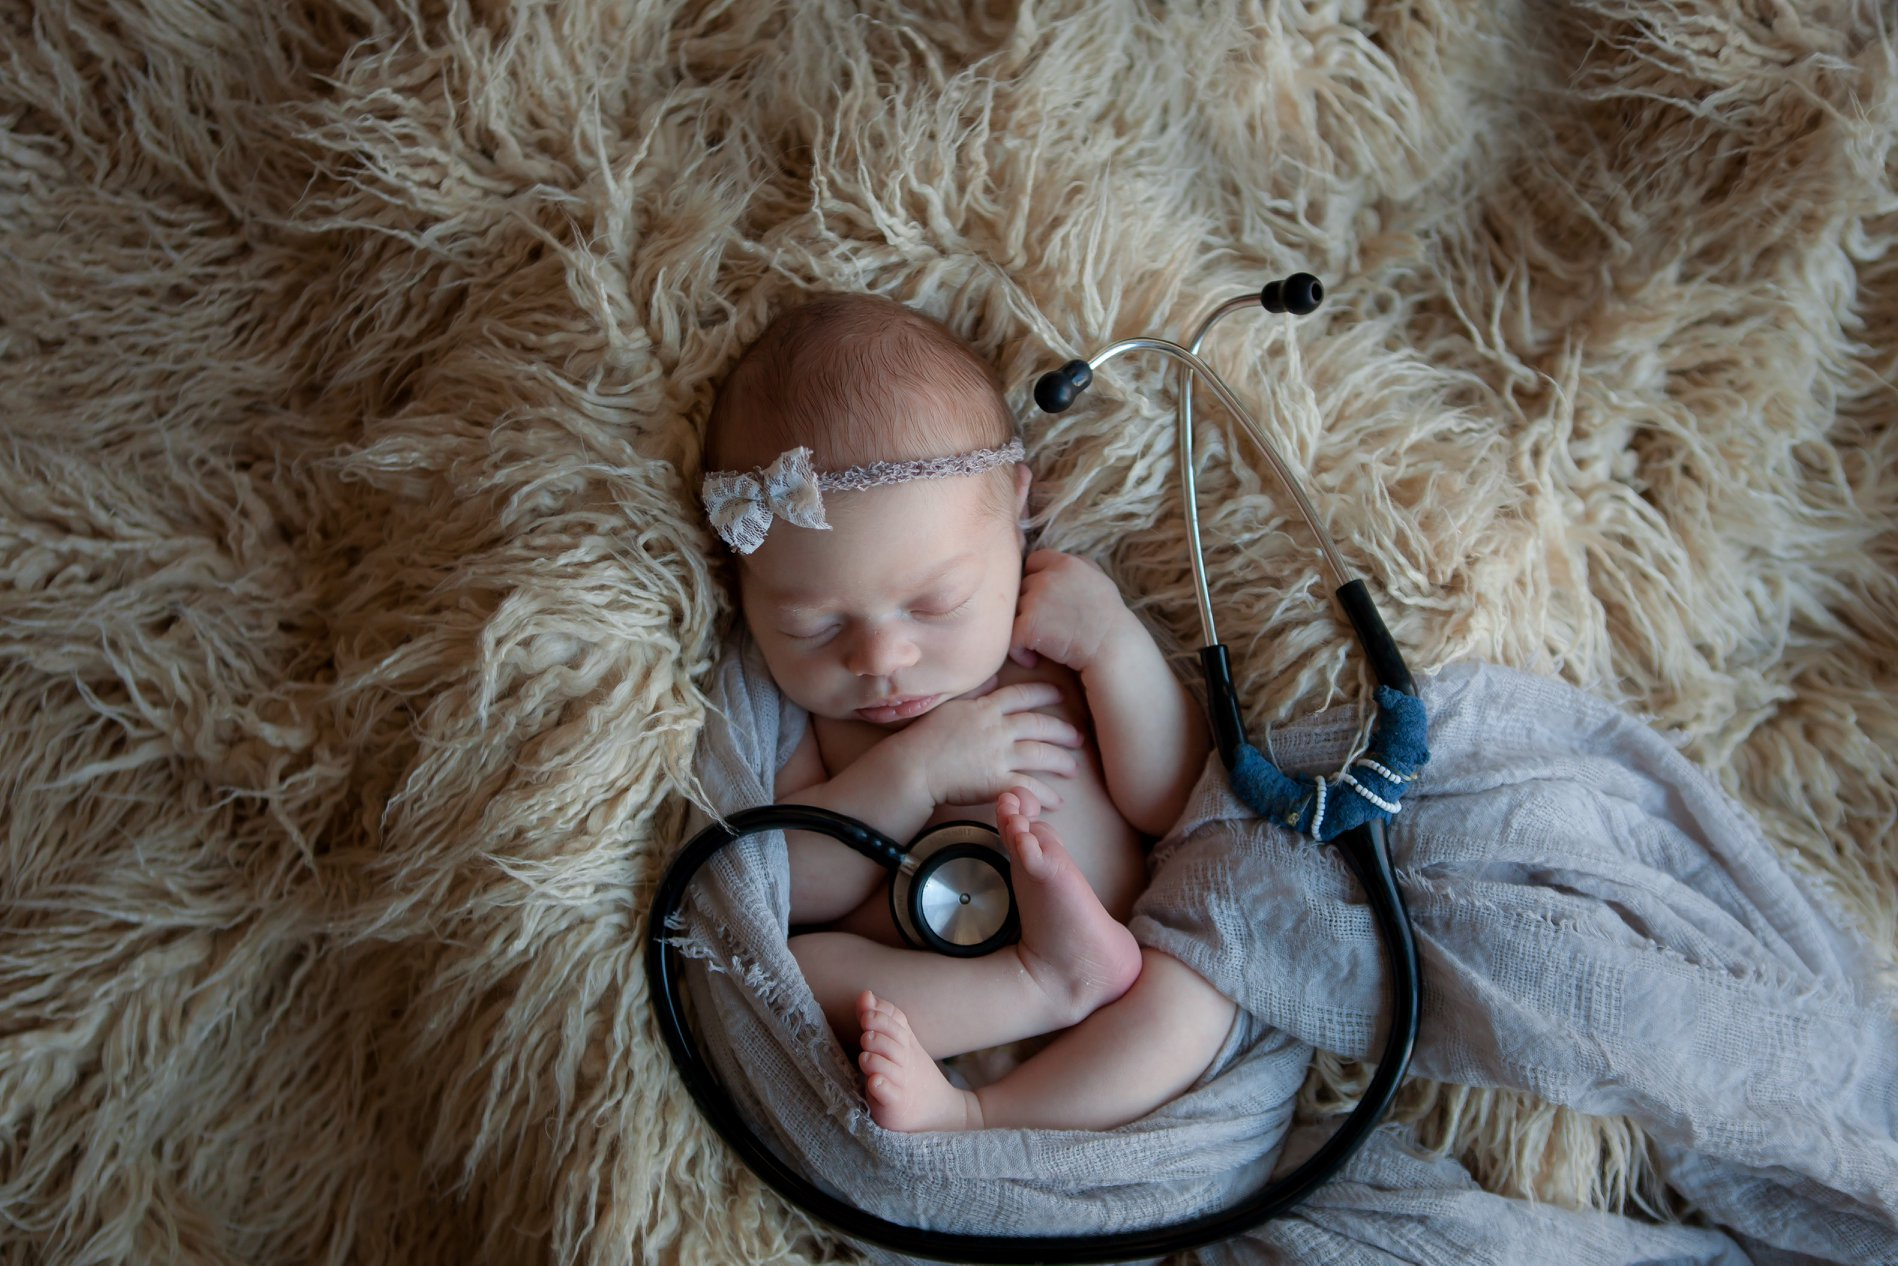 baby stethoscope picture.jpg